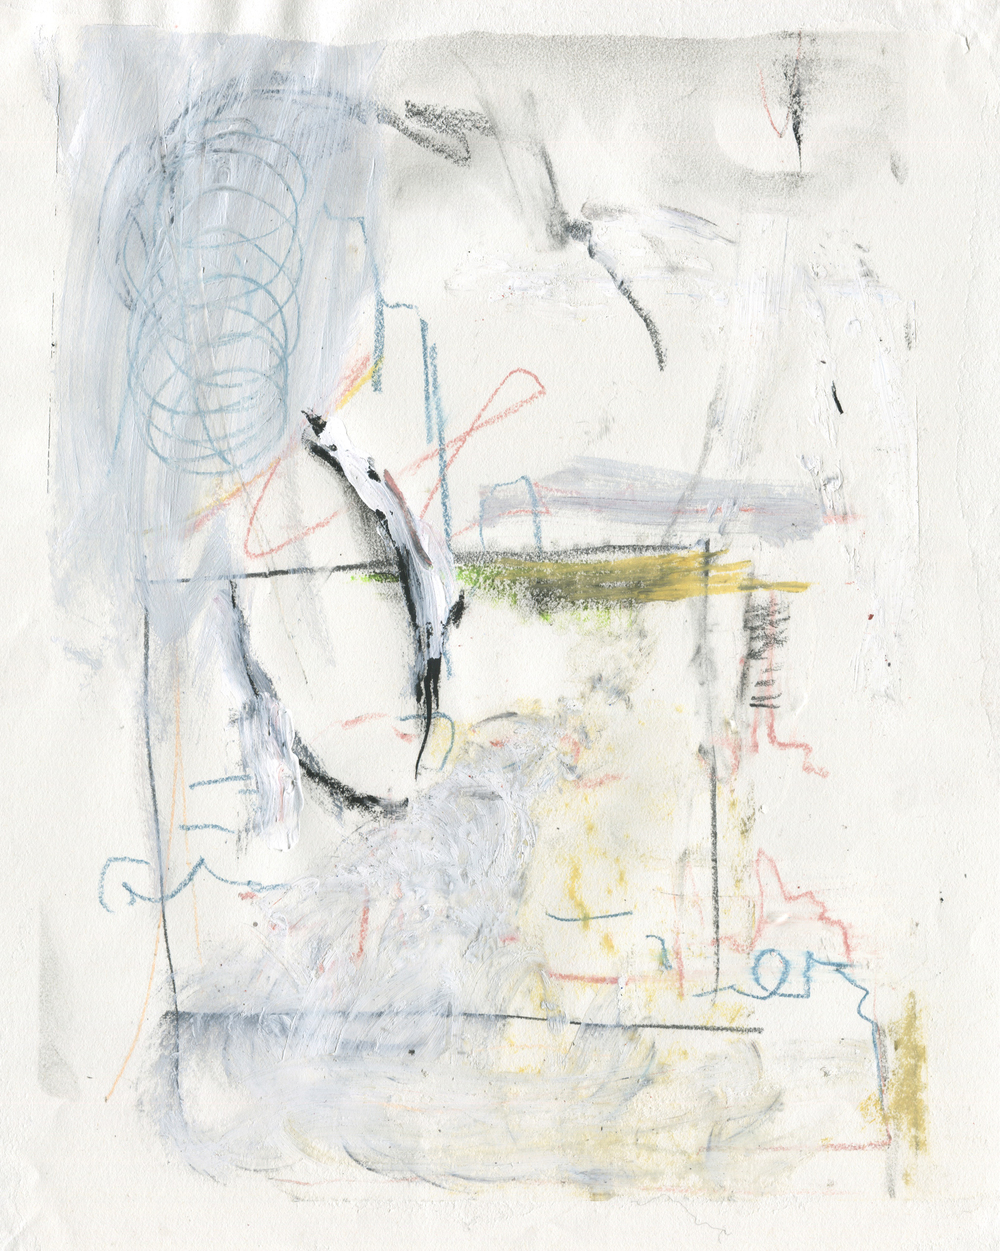 We All Miss You, Elliott , 2016  14 x 11 inches  Acrylic, Crayon, Charcoal, Colored Pencil, Graphite and Chalk Pastel on Paper